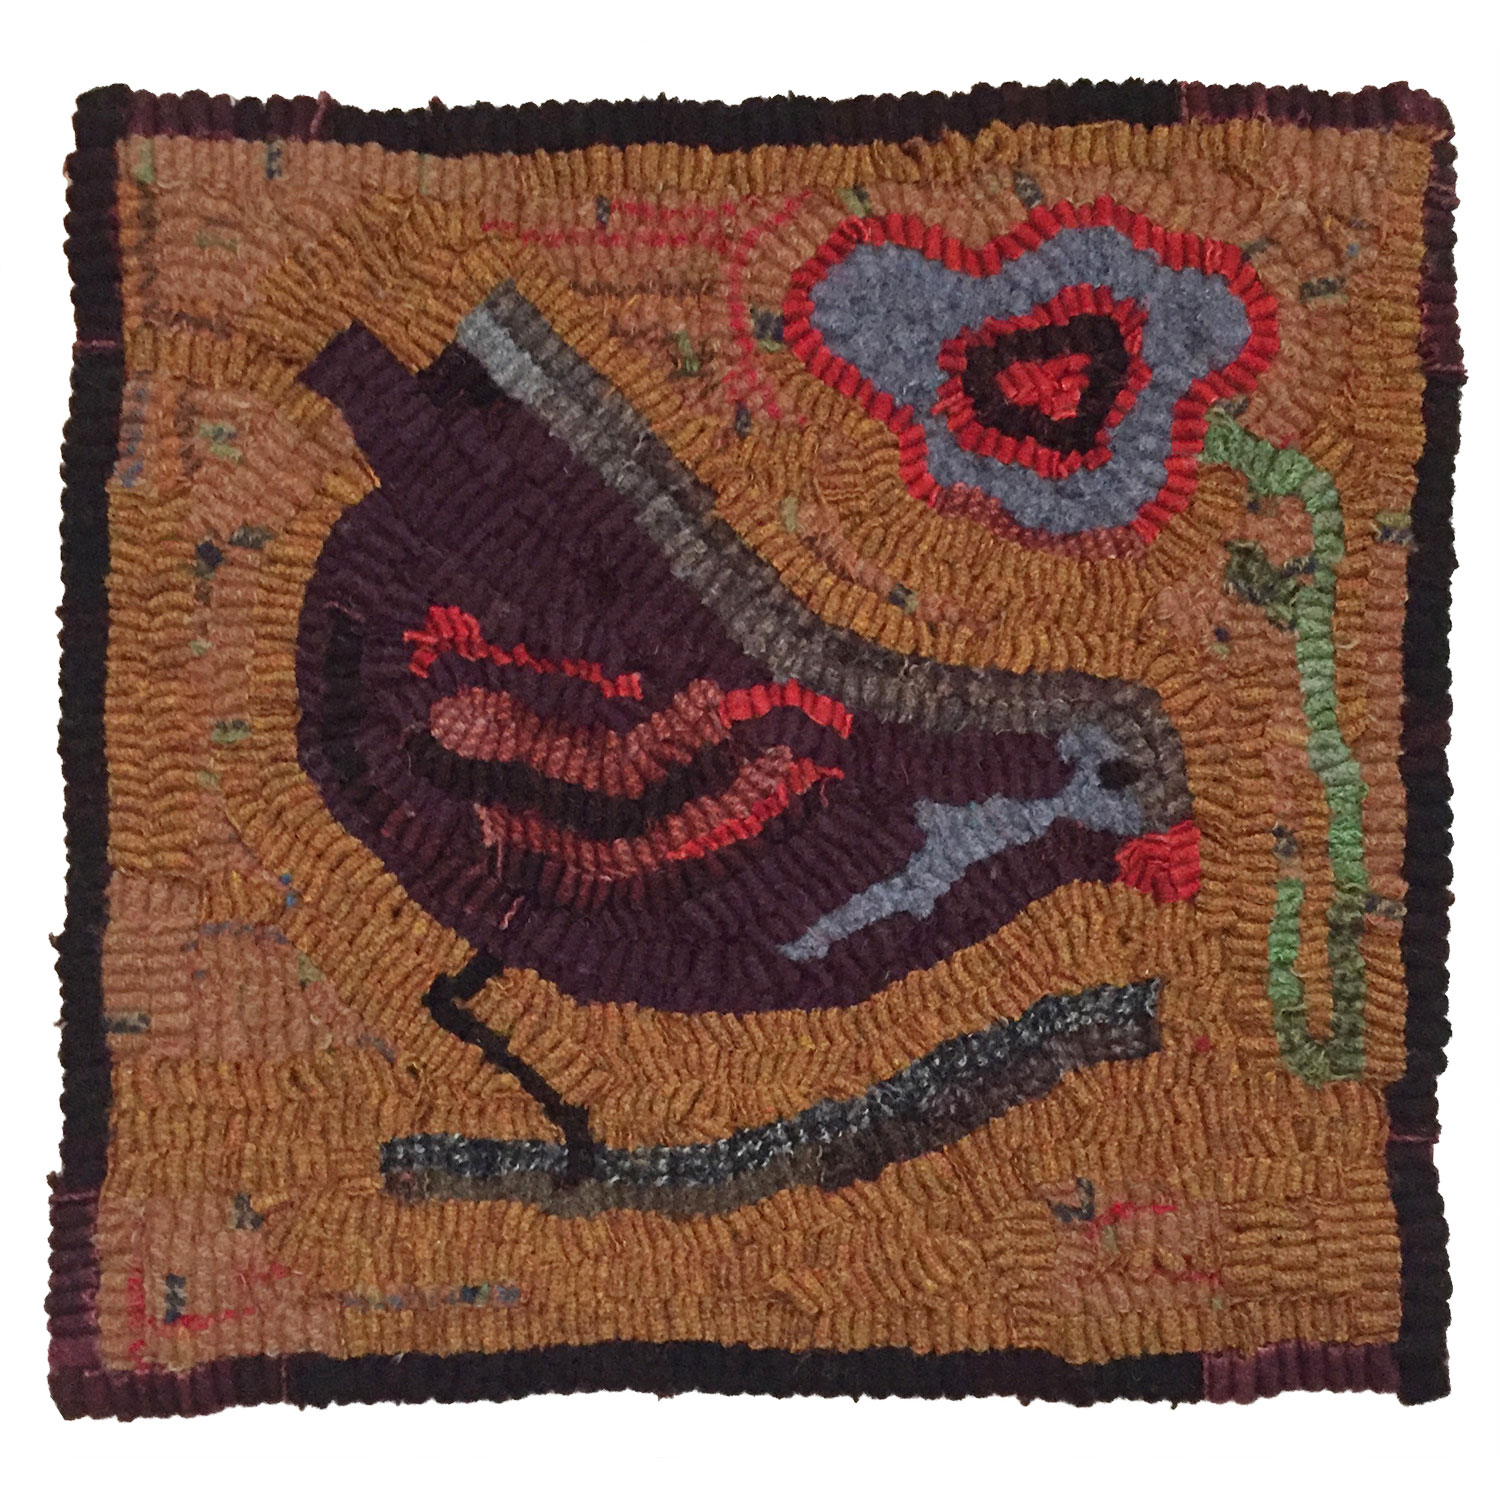 Franklin the Bird Hooked Rug